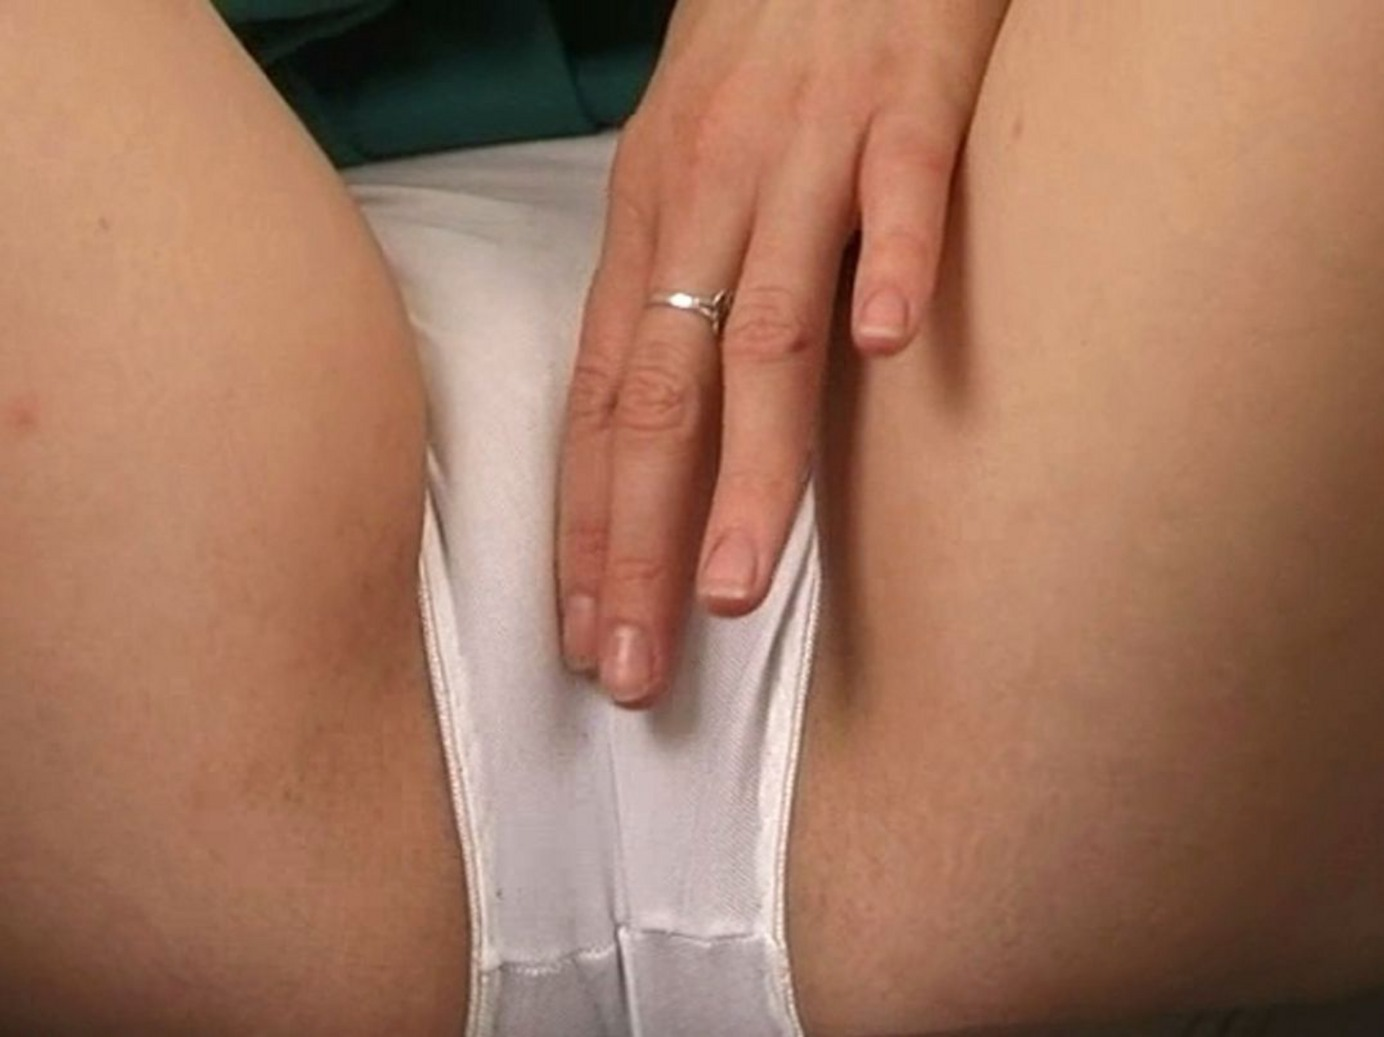 Hairy panty videos see through panty pussy